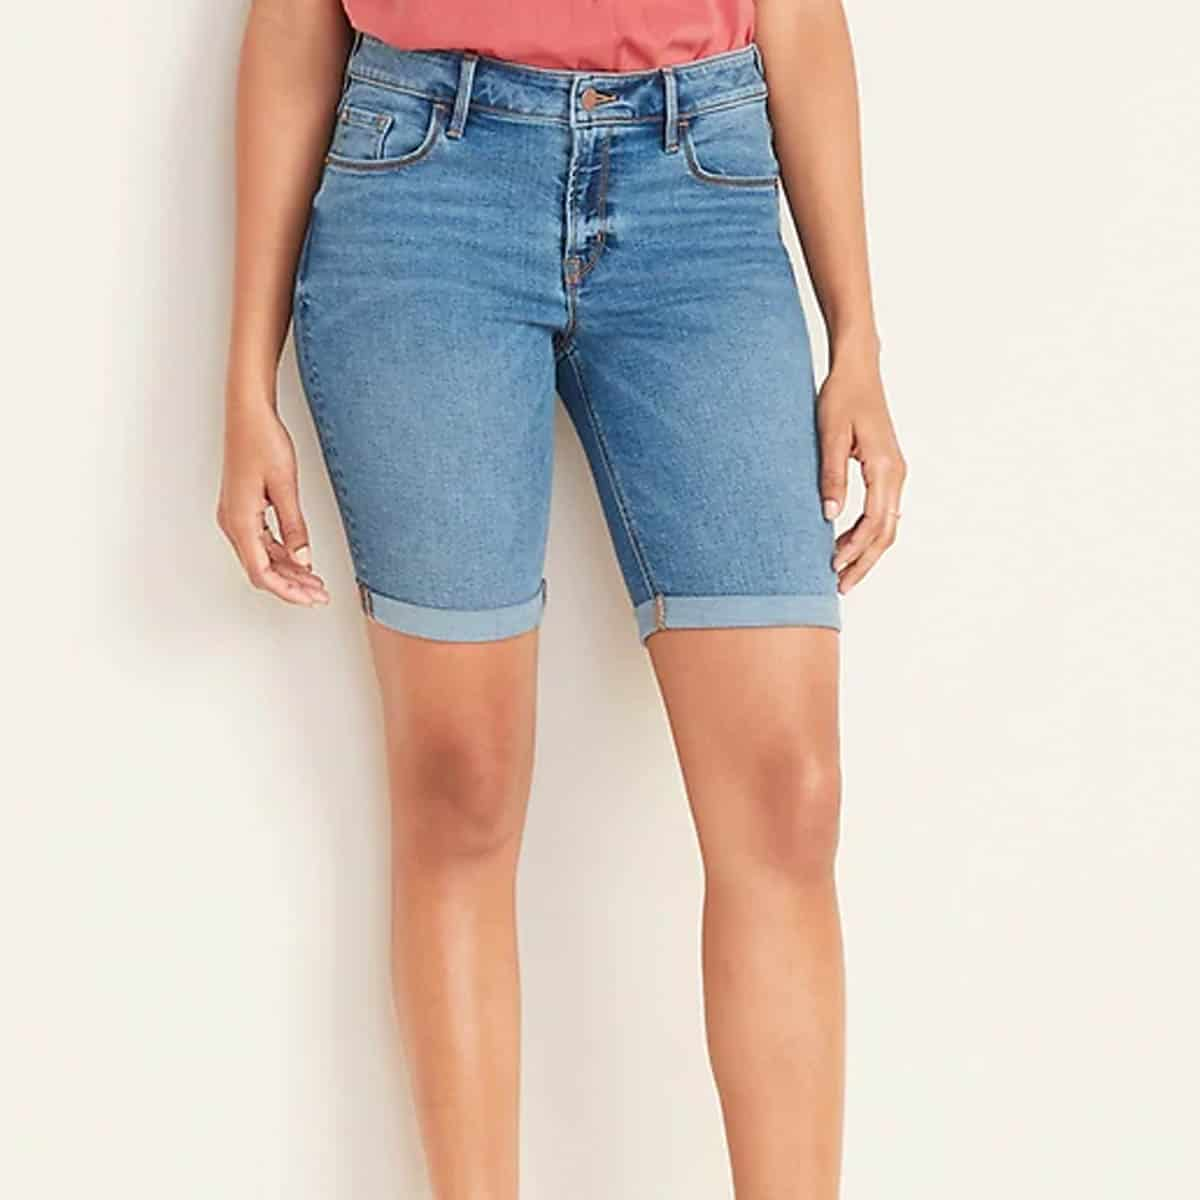 10 Stylish and Comfy Summer Clothes I'm Adding to My Wardrobe Right Now 2